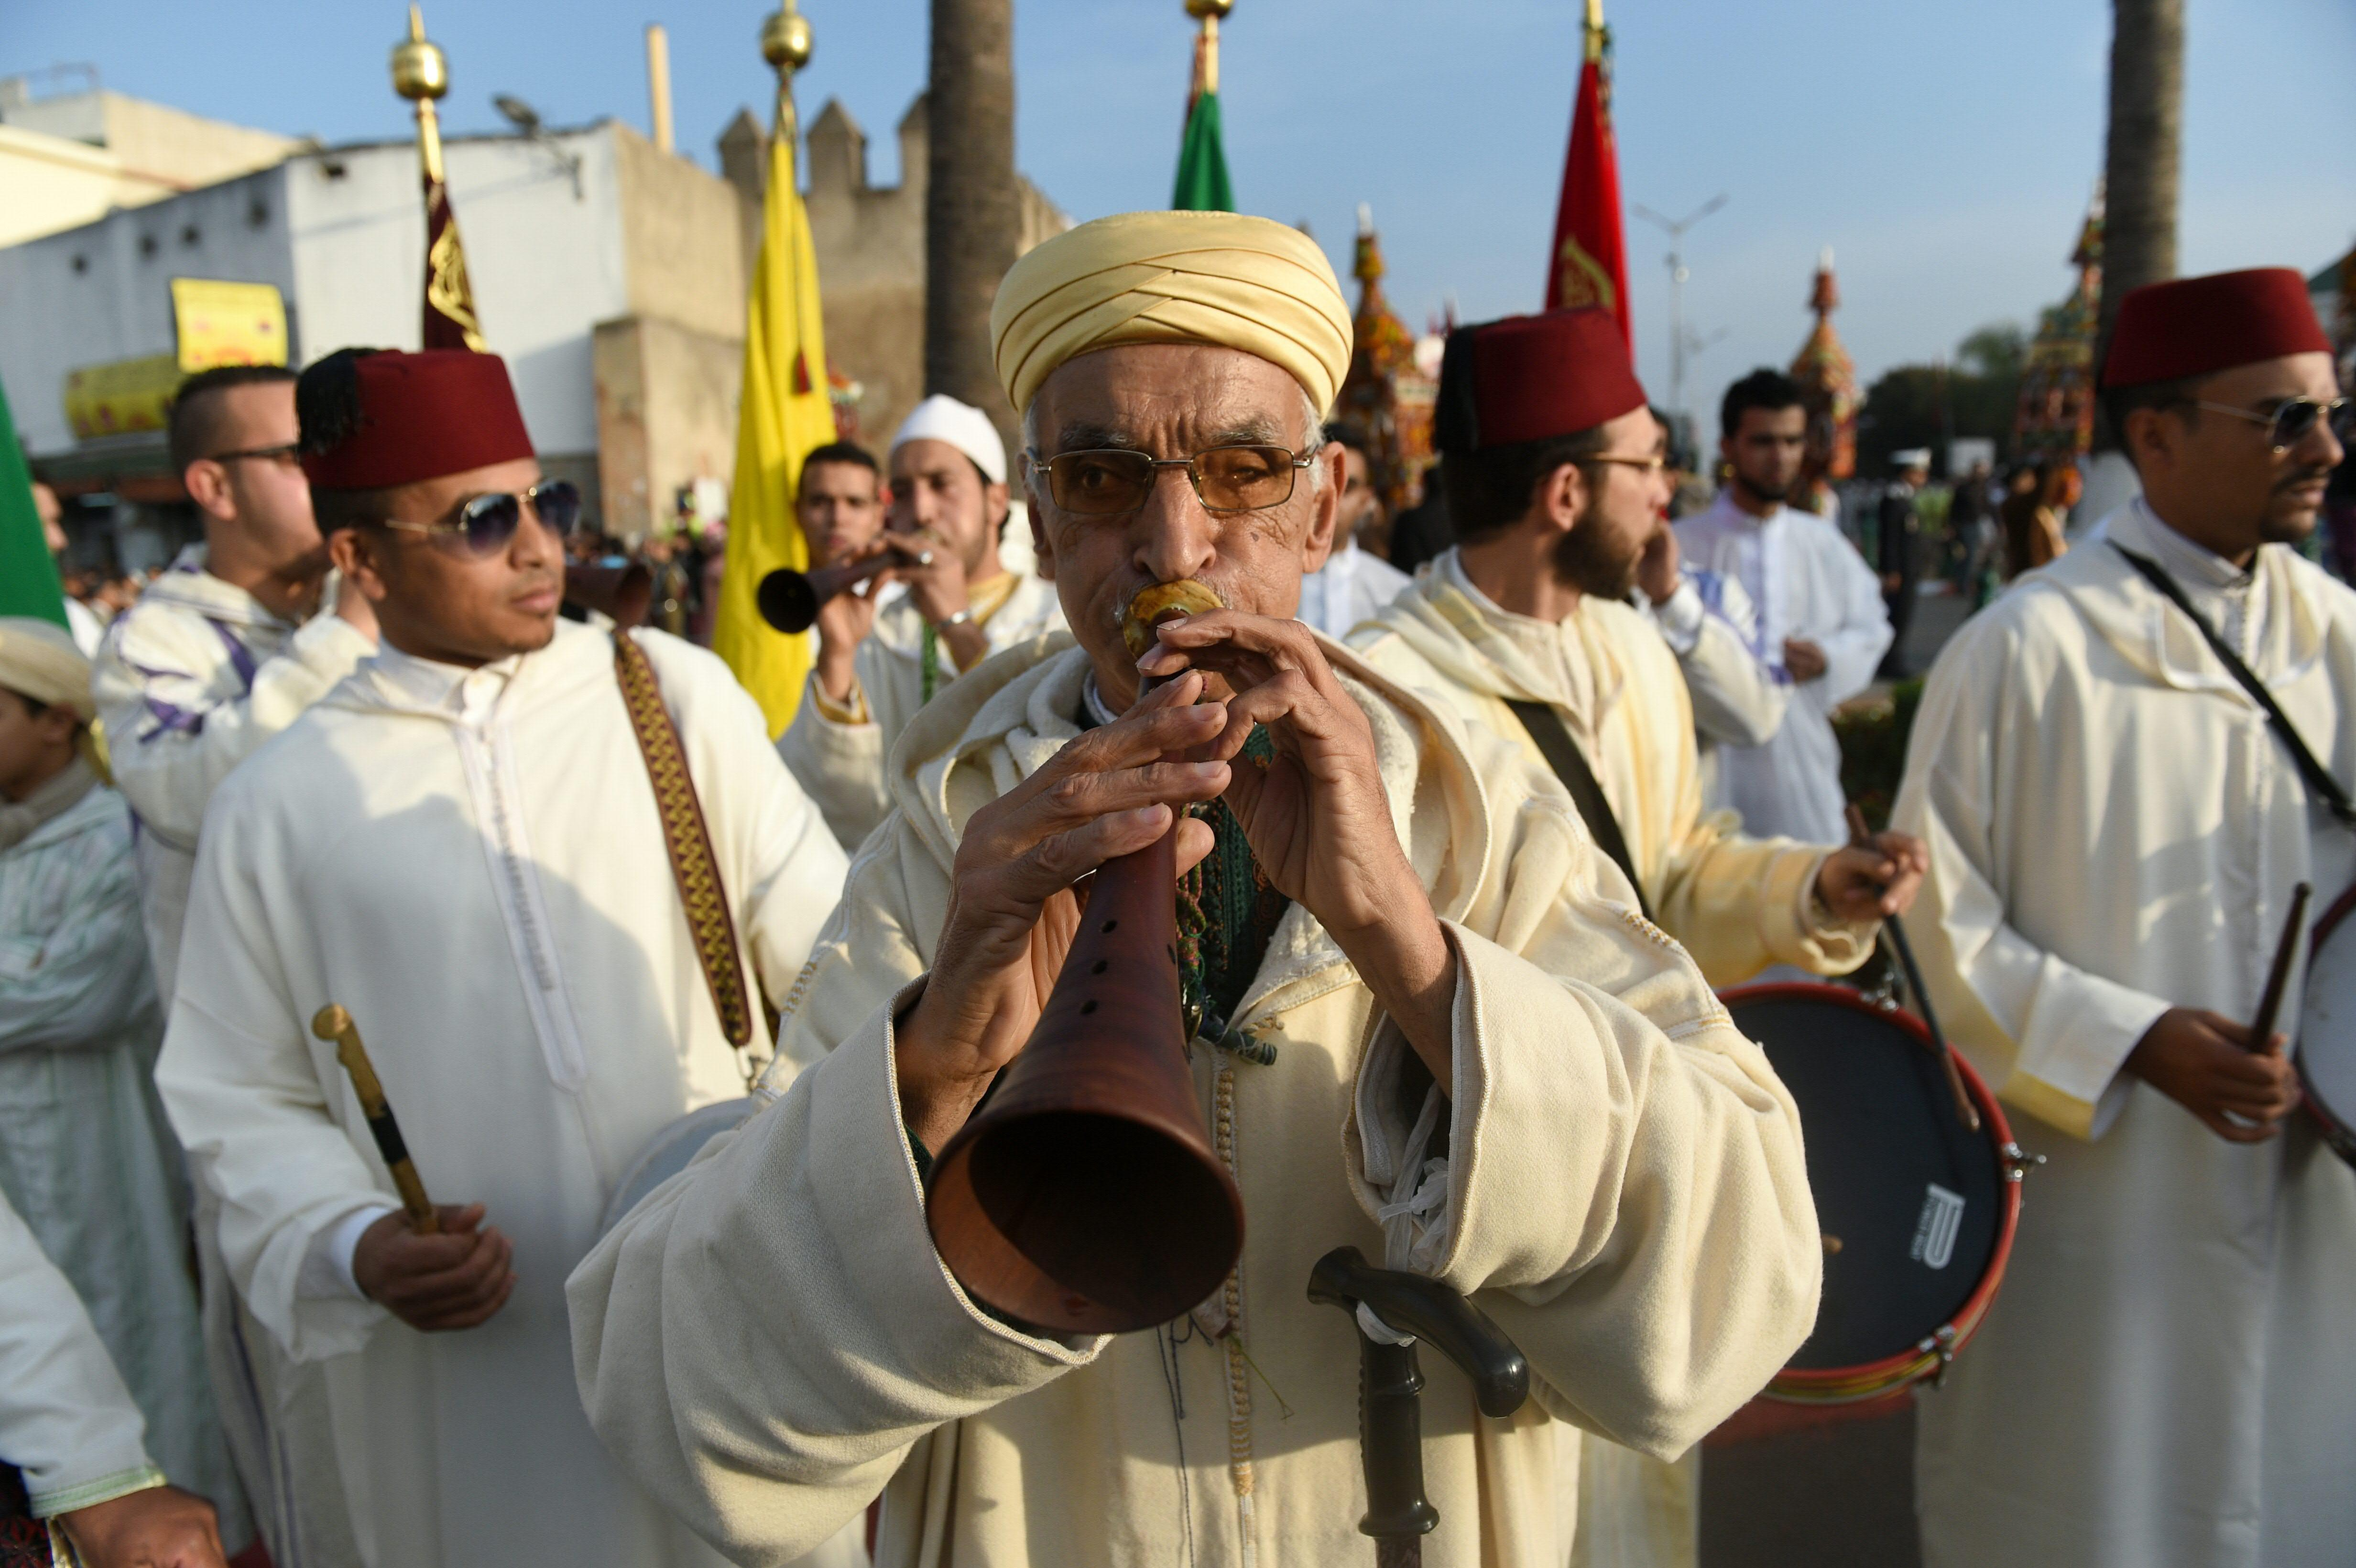 Prophet Mohammed parade in Morocco